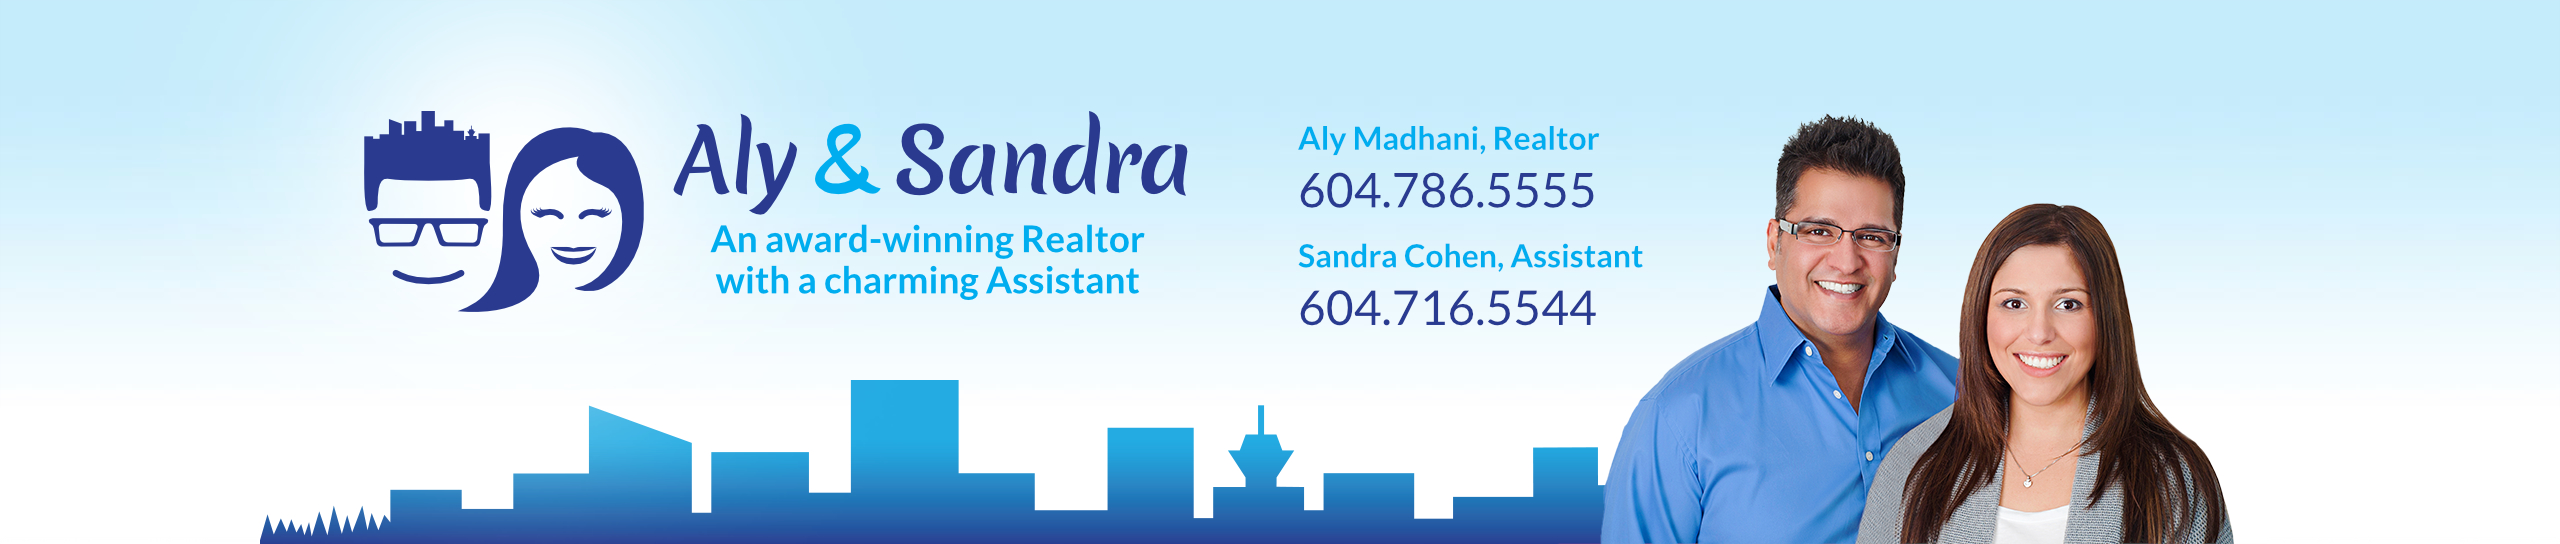 Aly Madhani & Sandra Cohen - Superb Service - Unbeatable Rates